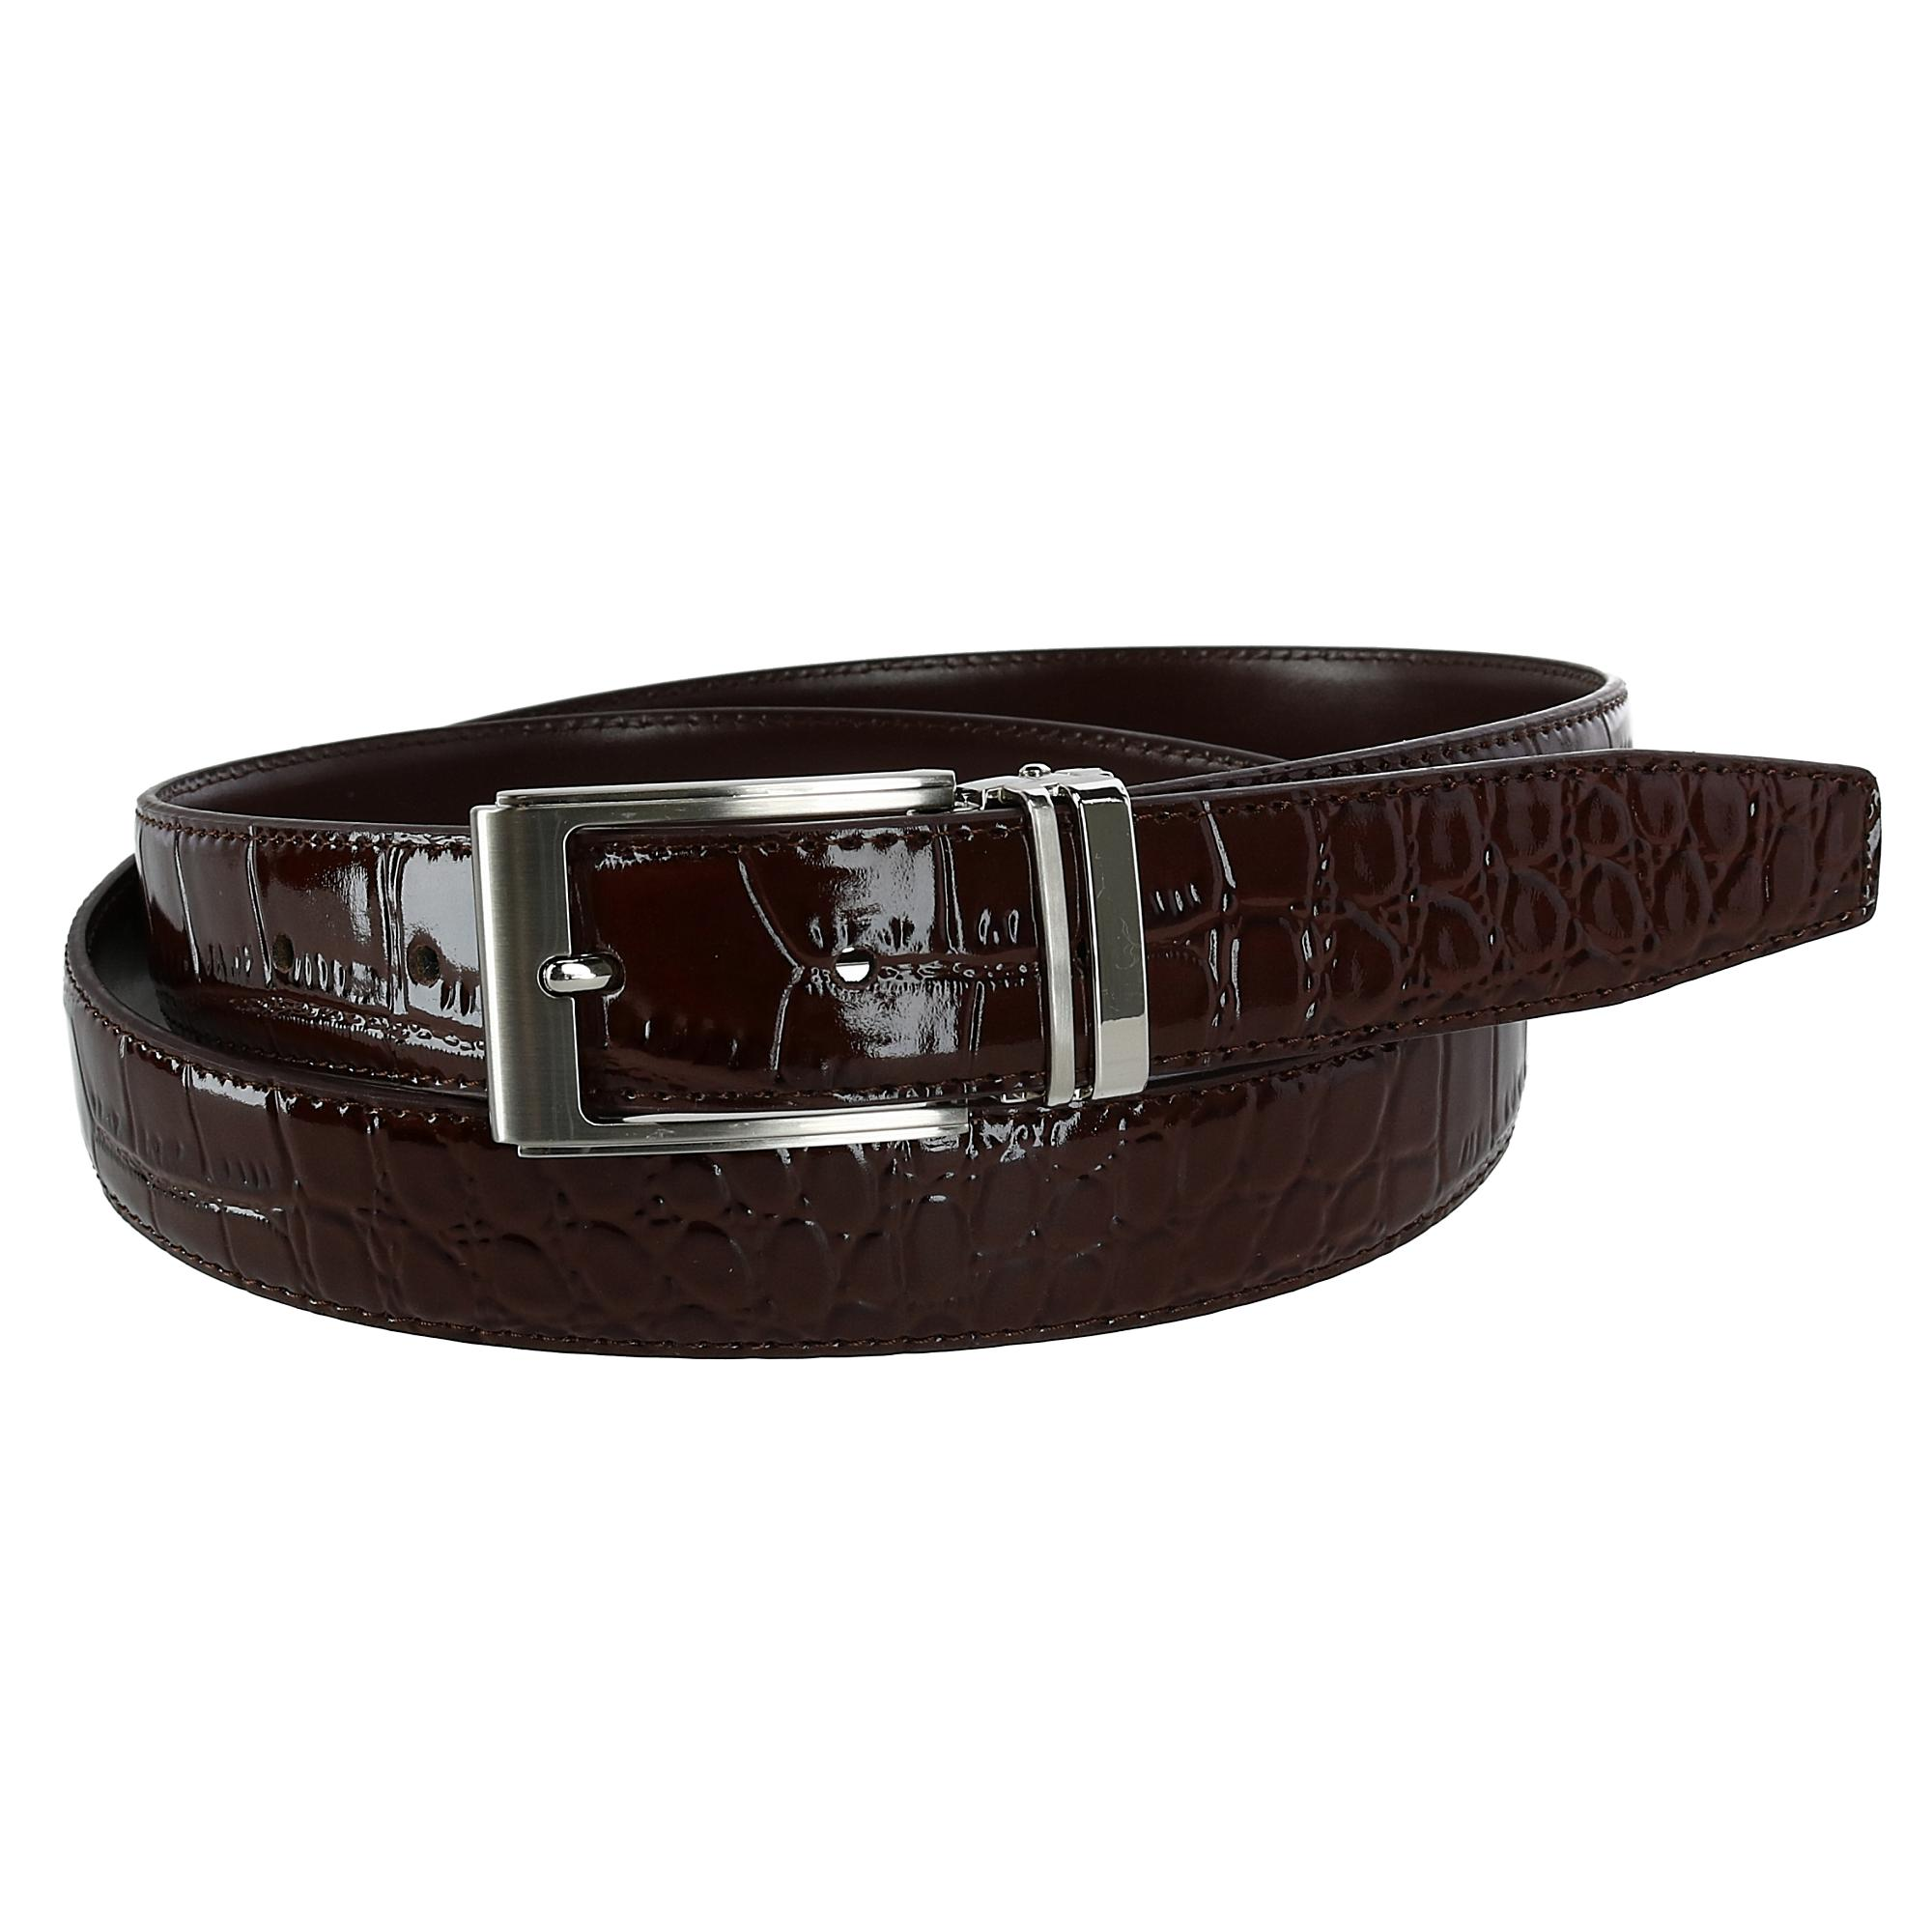 Ctm Mens Big & Tall Leather Croc Print Dress Belt With Clamp On Buckle